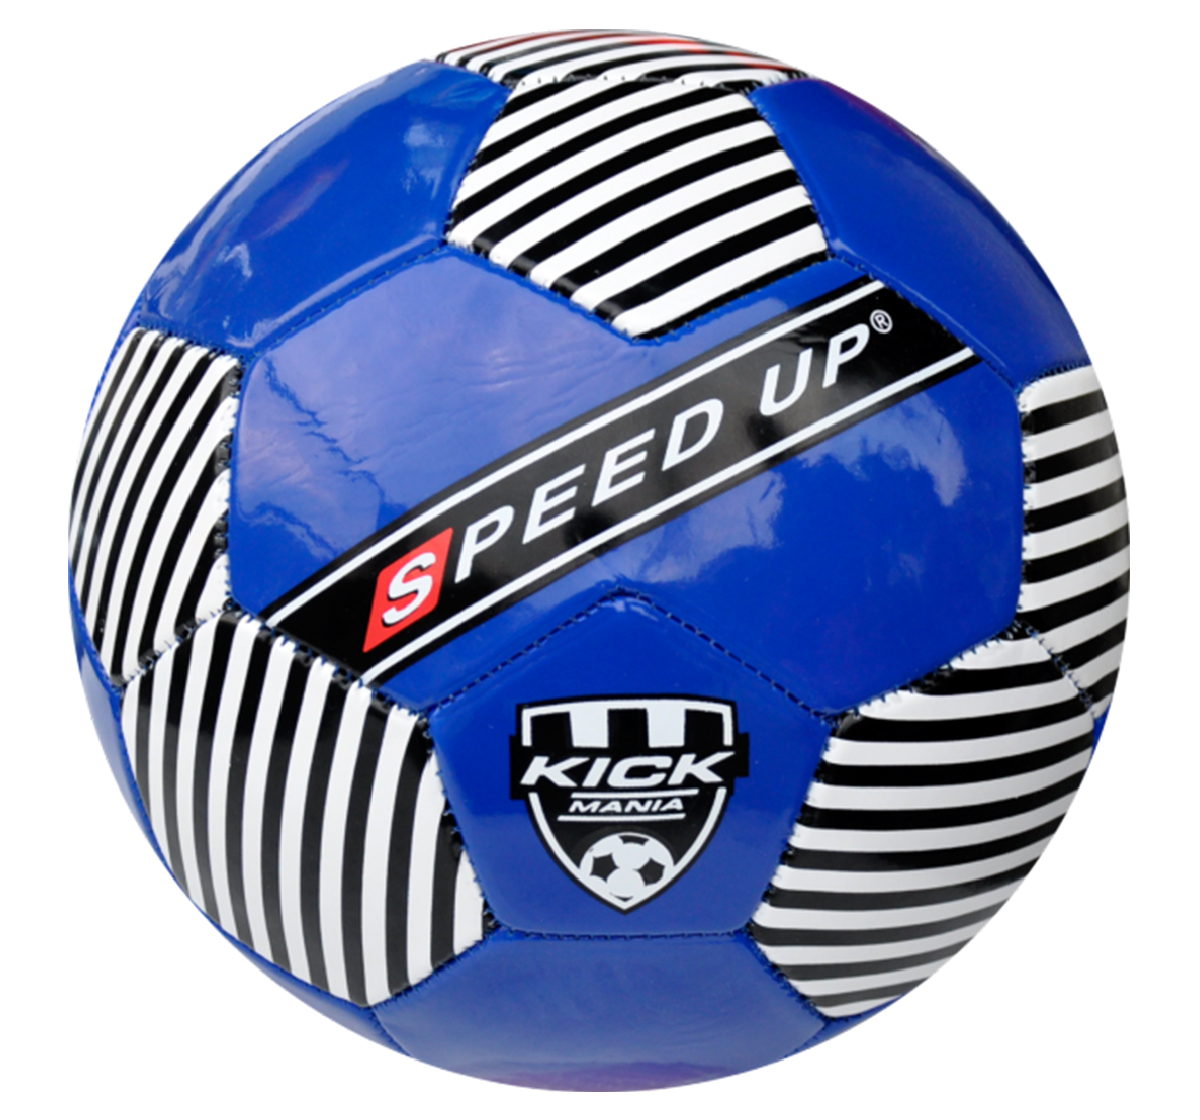 Speed Up | Speed Up Football Size 5 Kick Mania, Unisex, 10Y+ (Multicolor)